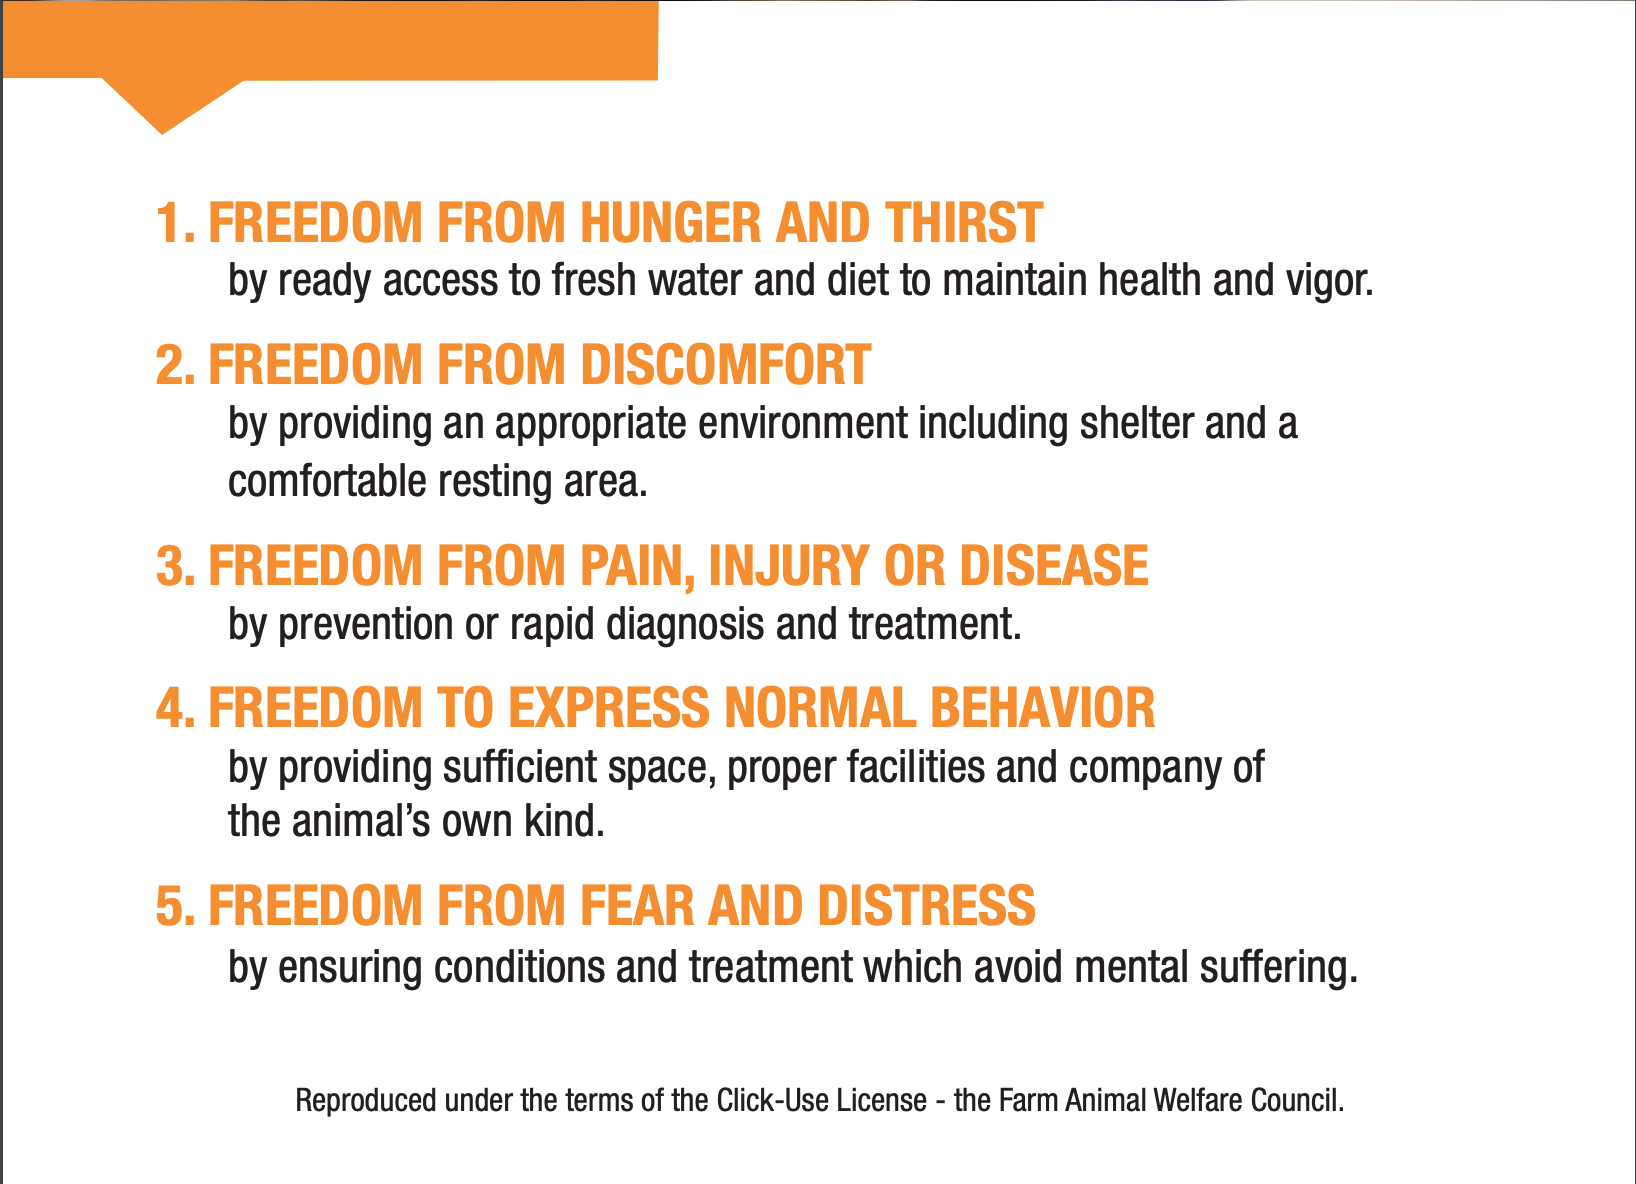 These are the 5 freedoms that must be met for a situation to be considered humane in animal welfare. Screenshot from the ASPCA, sourced from the Farm Animal Welfare Council.